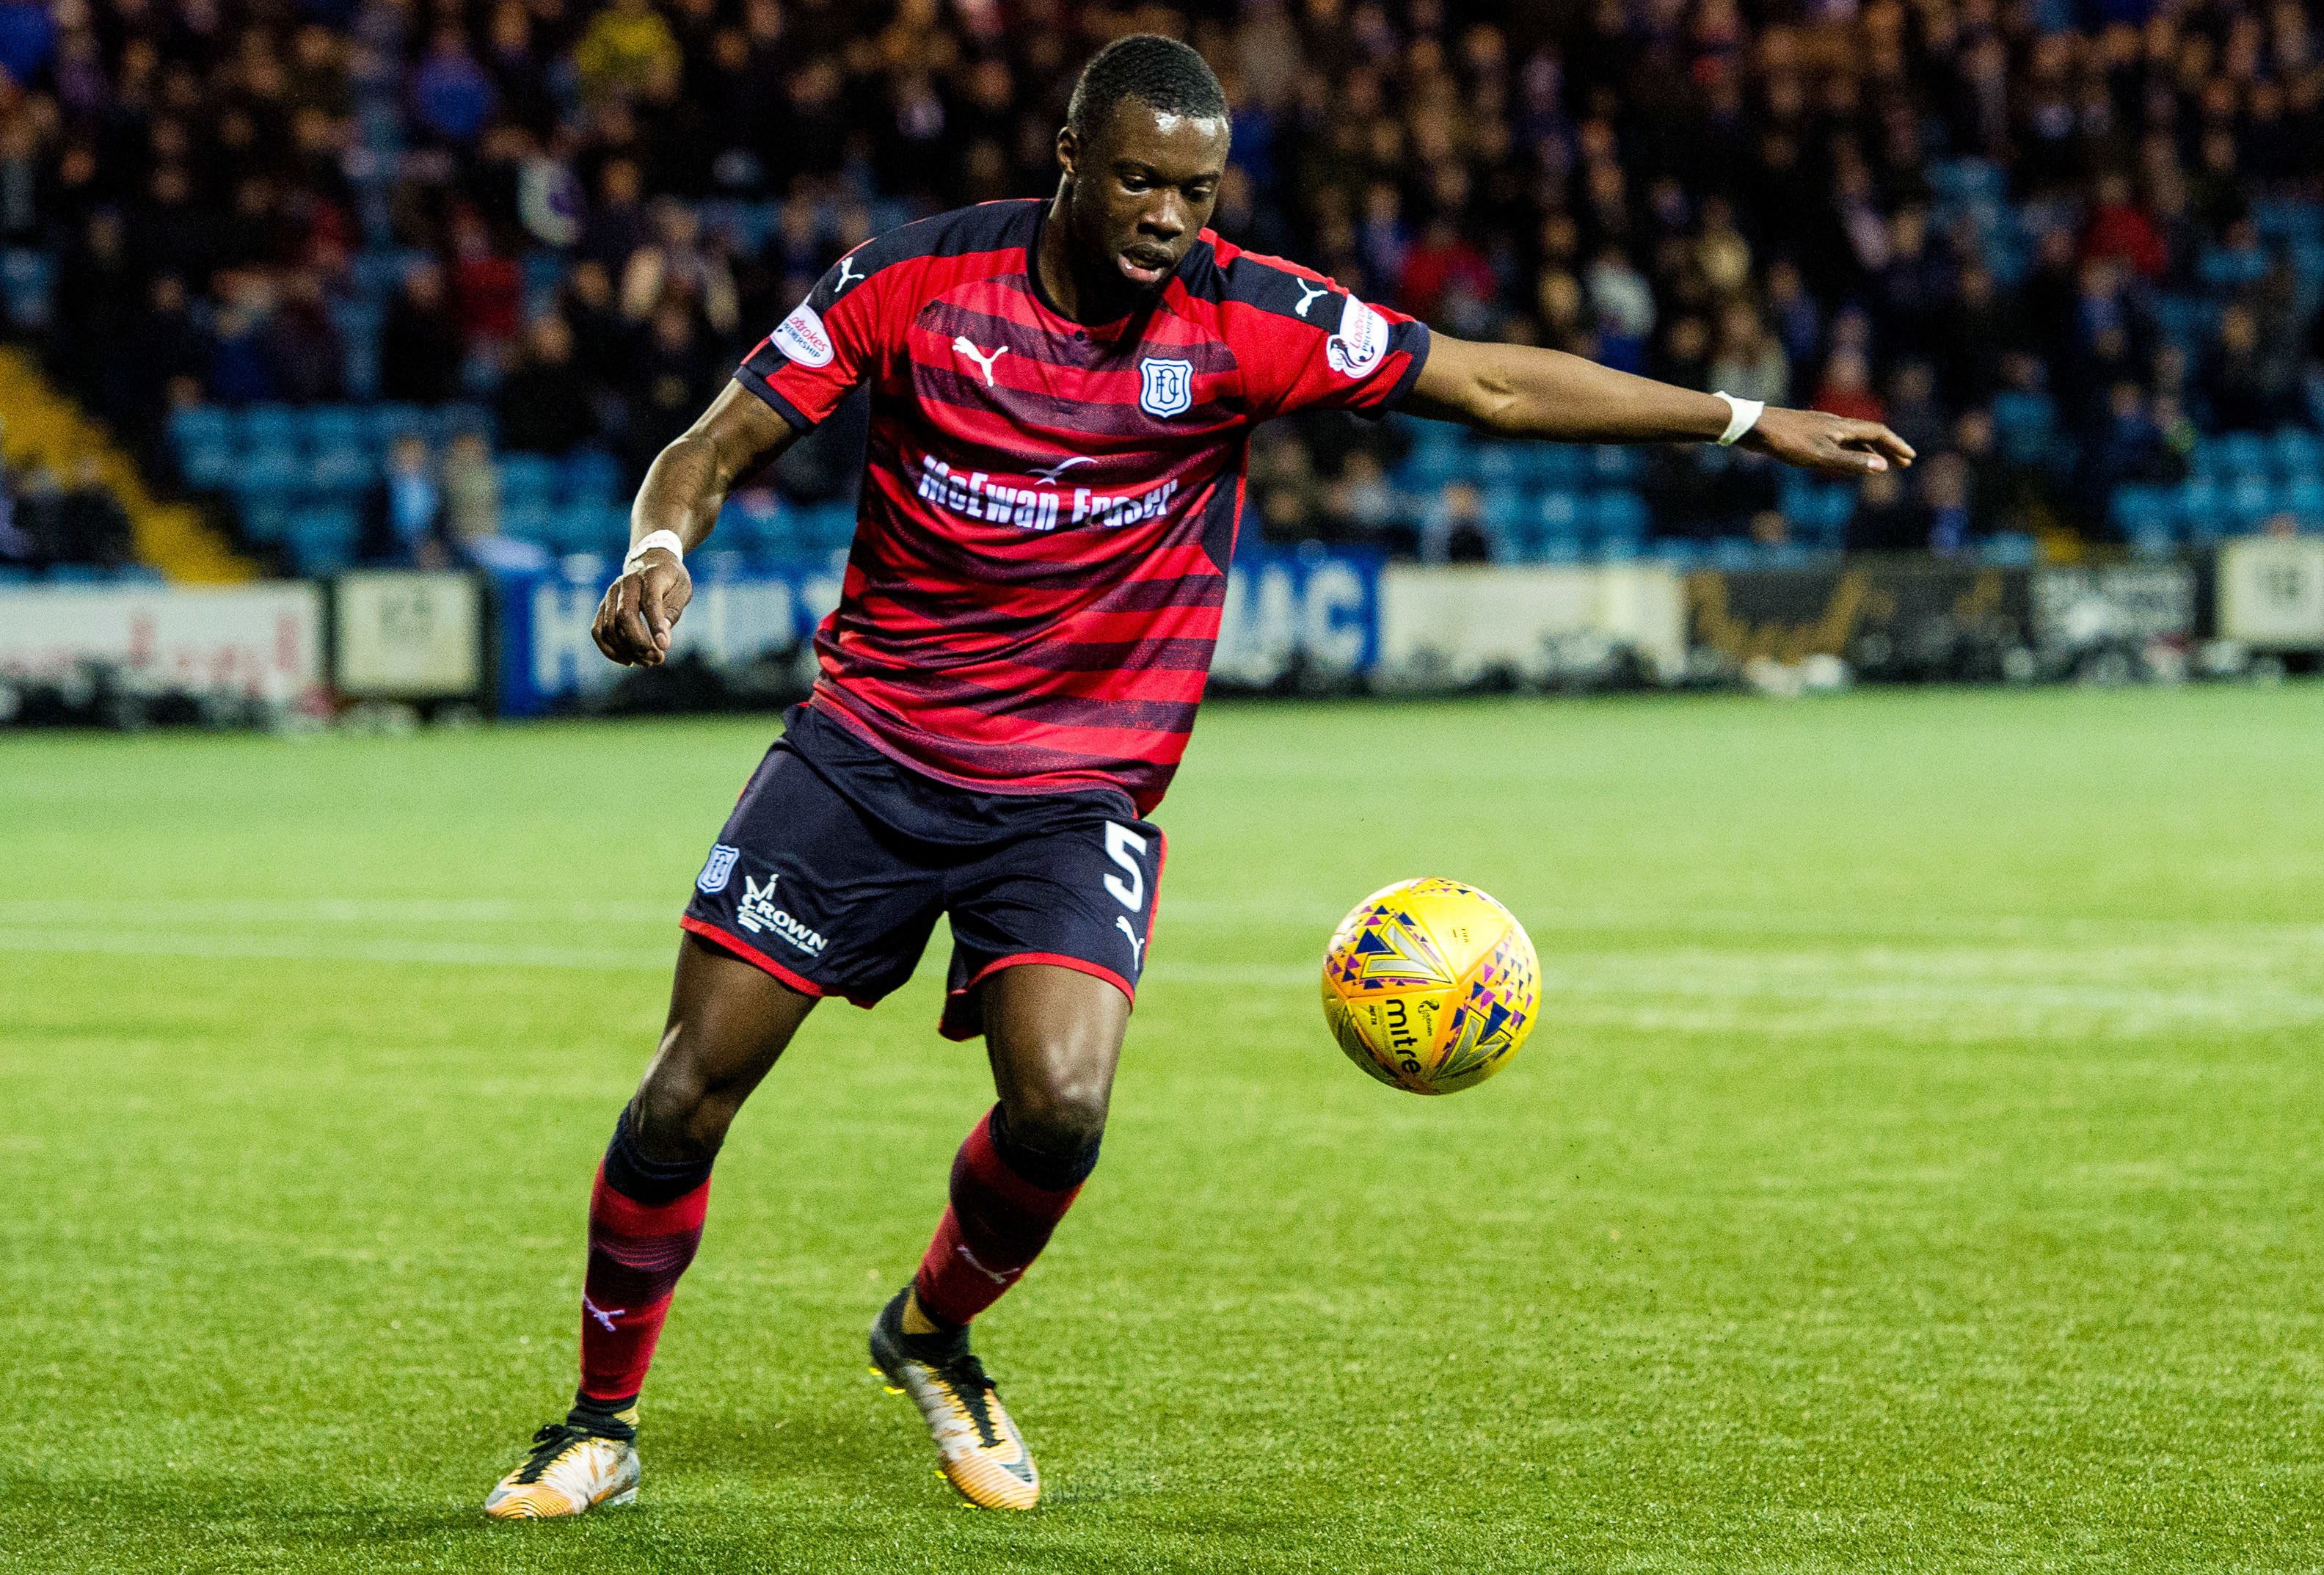 Genseric Kusunga in action for Dundee